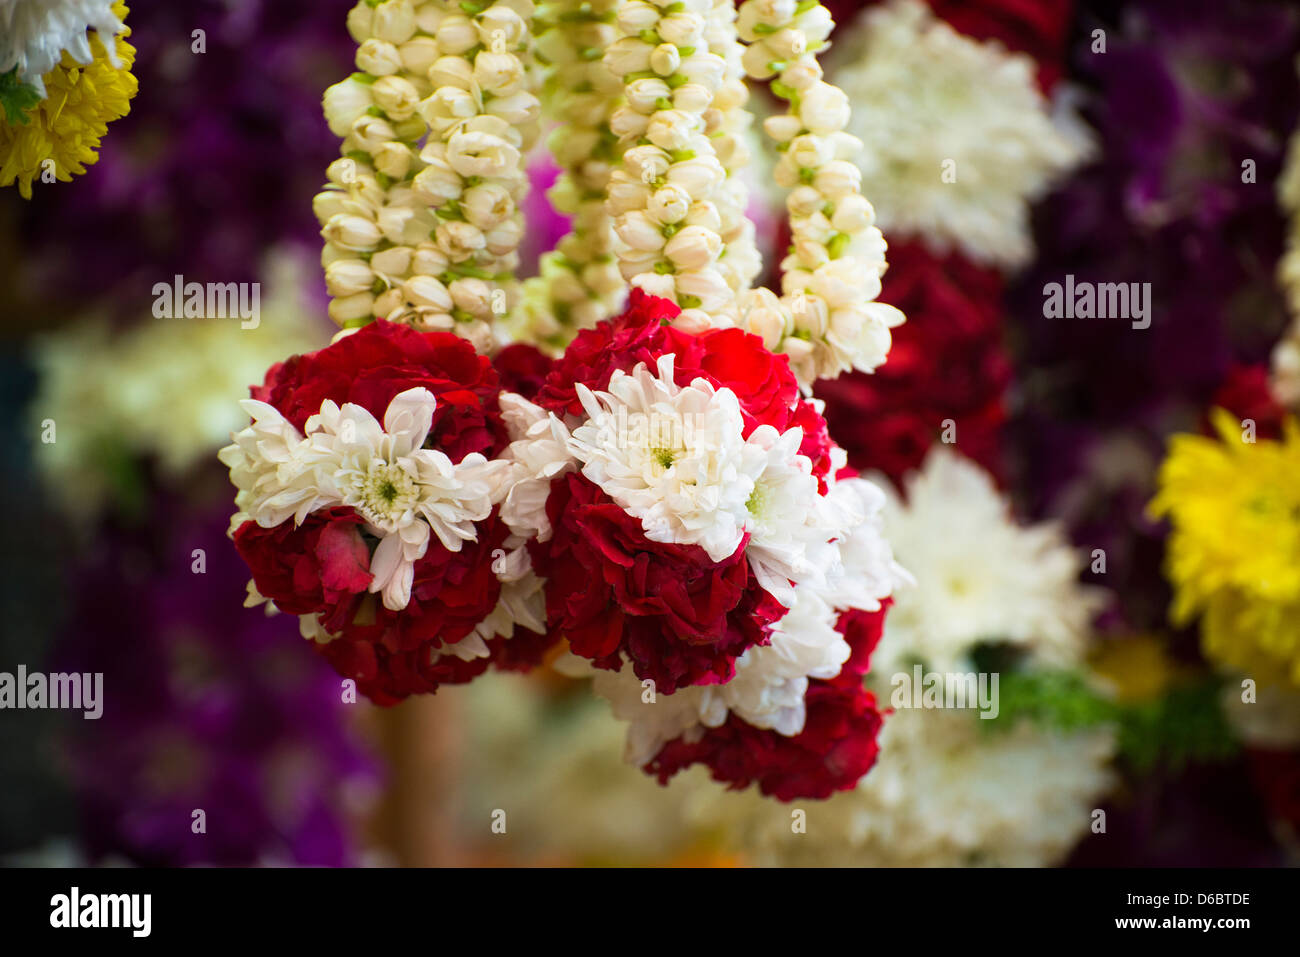 Flower garlands for Indian festivals displayed at a stall. - Stock Image